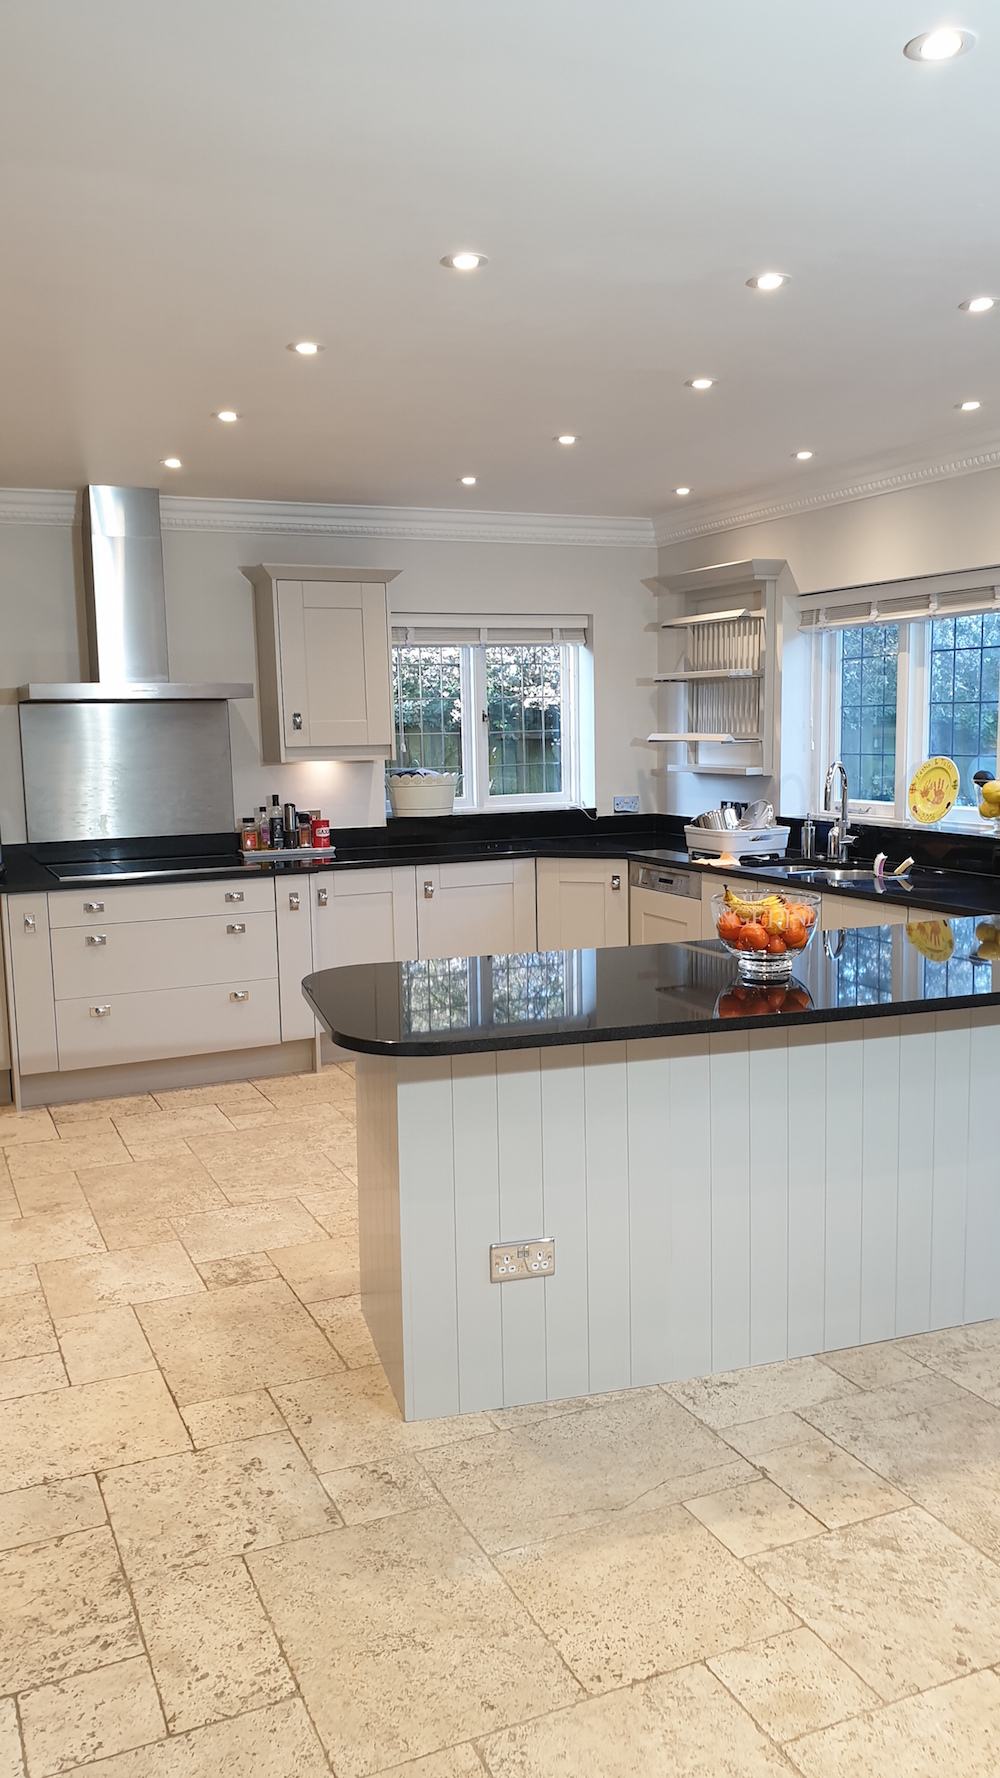 Well designed oak kitchen repainted in contemporary semi matt paint. Kitchen painted in Radlett